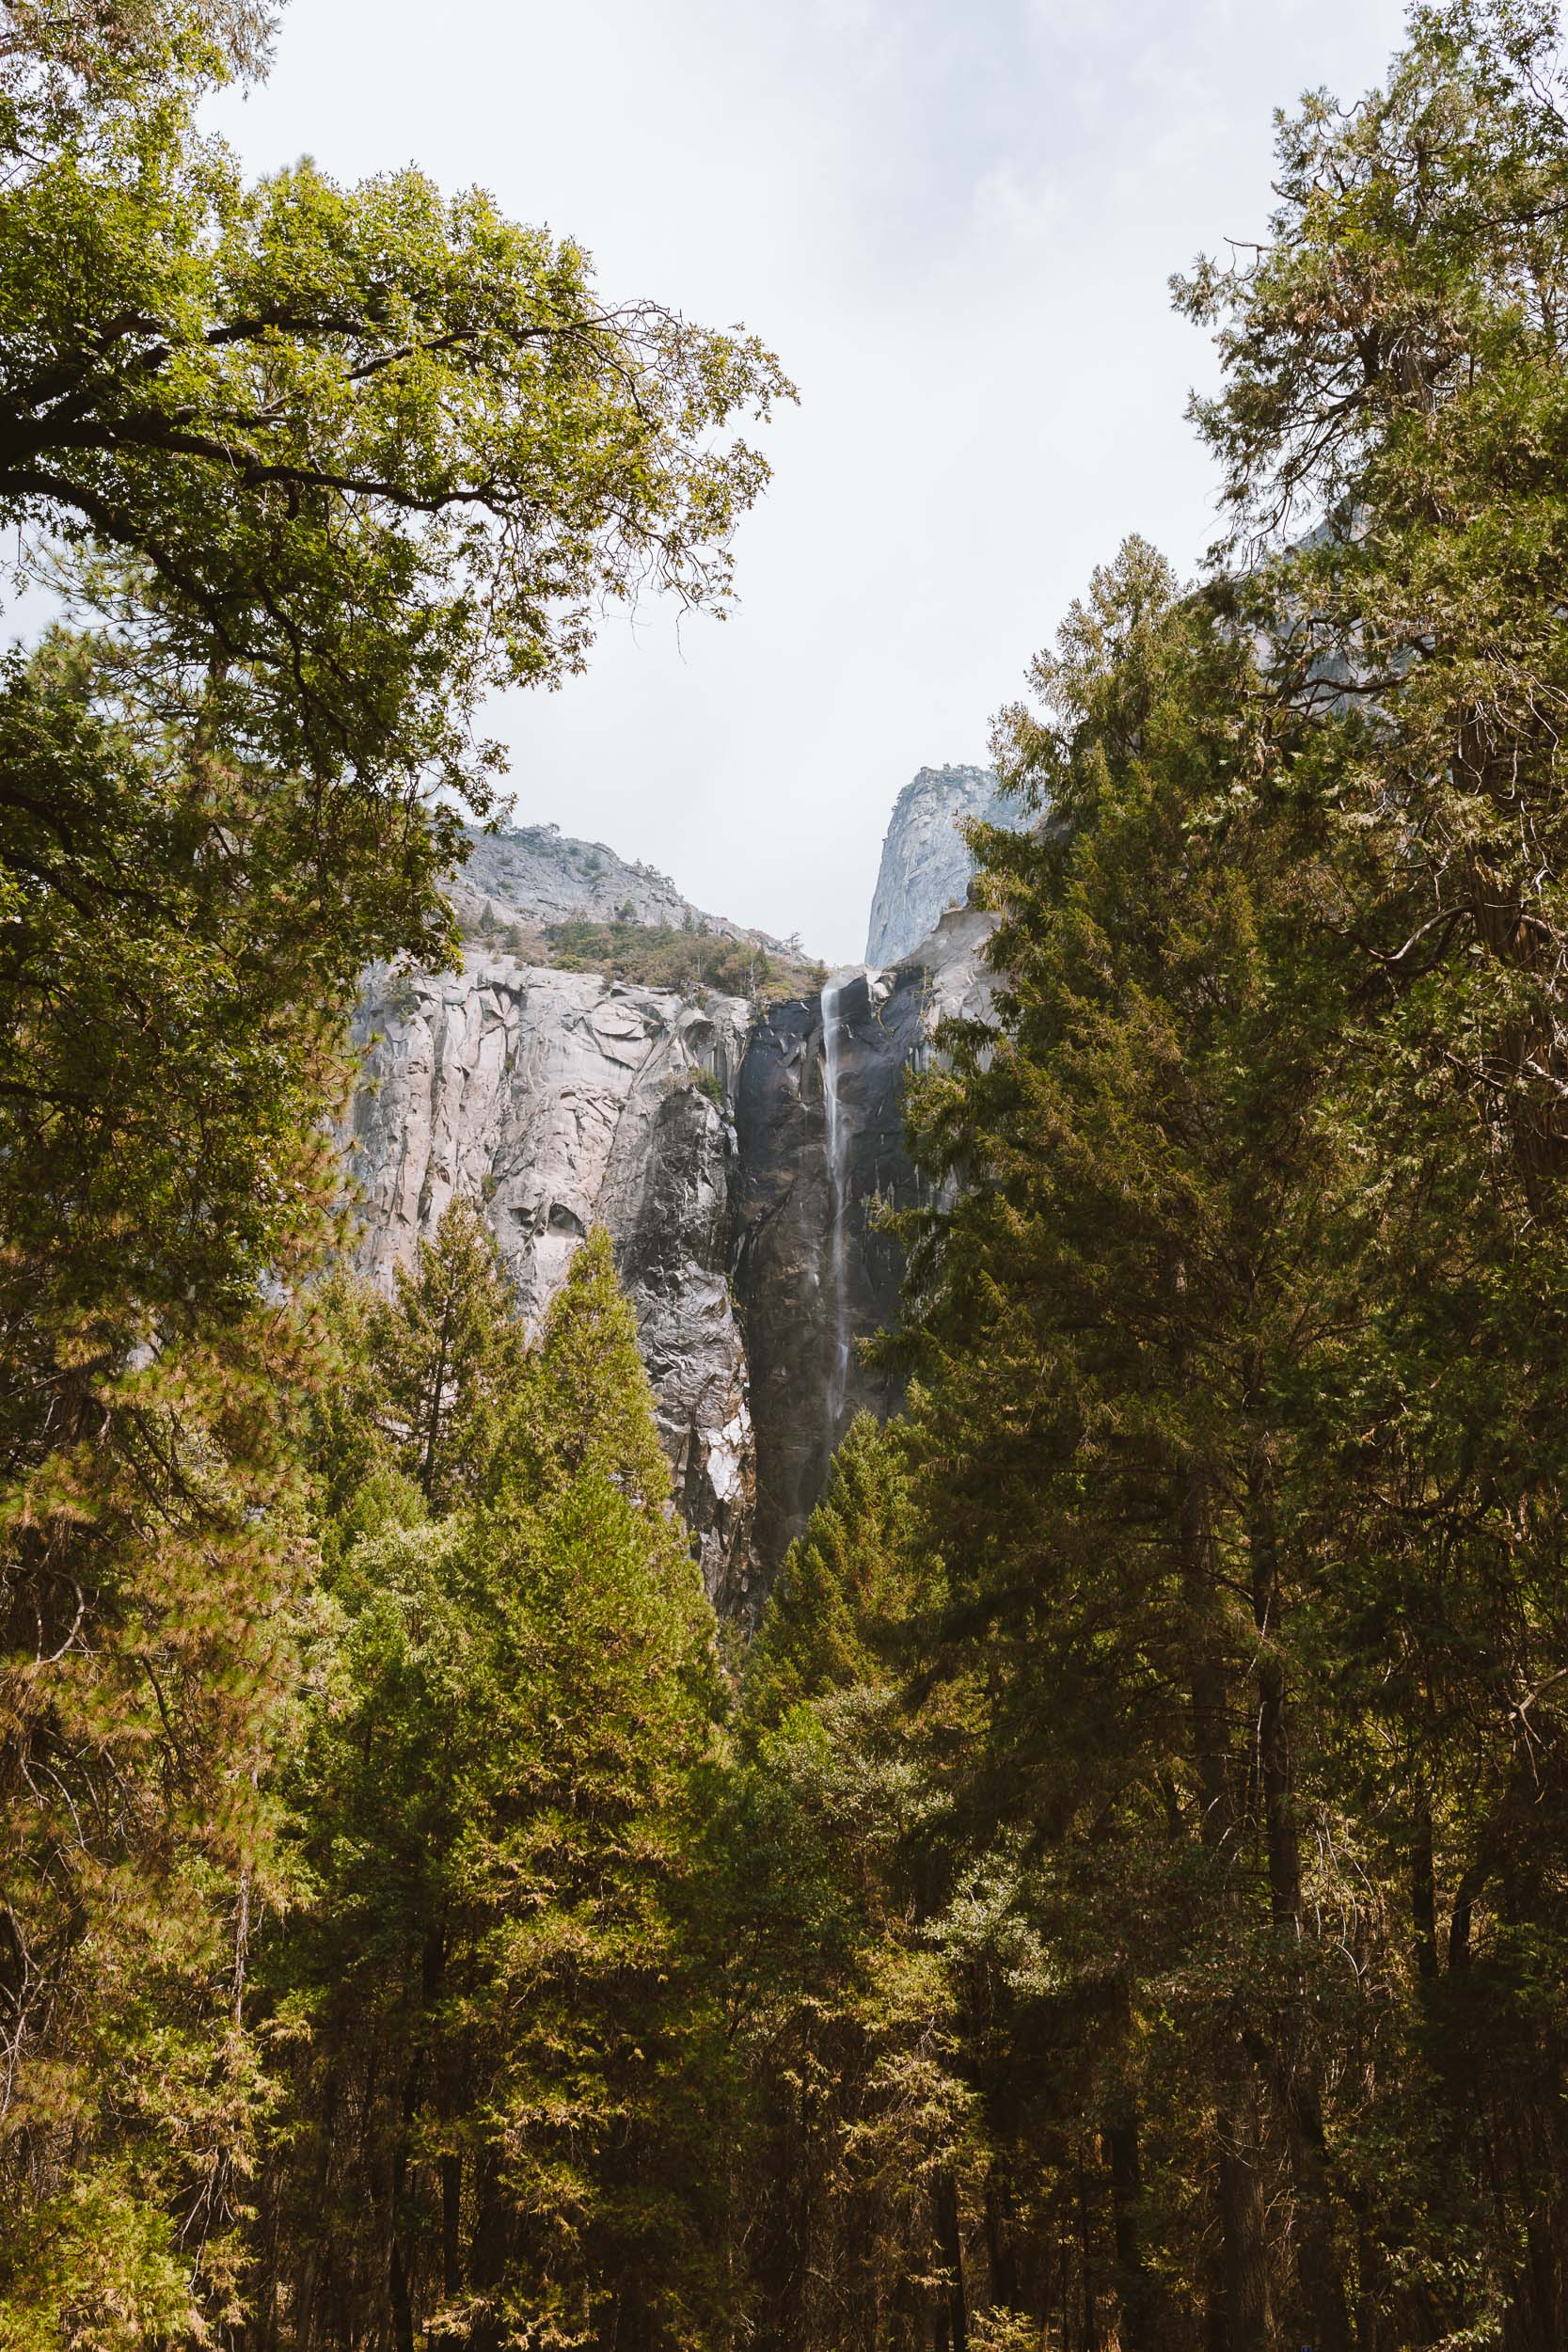 20160820_20160821_YOSEMITE_NATIONAL_PARK-4.jpg